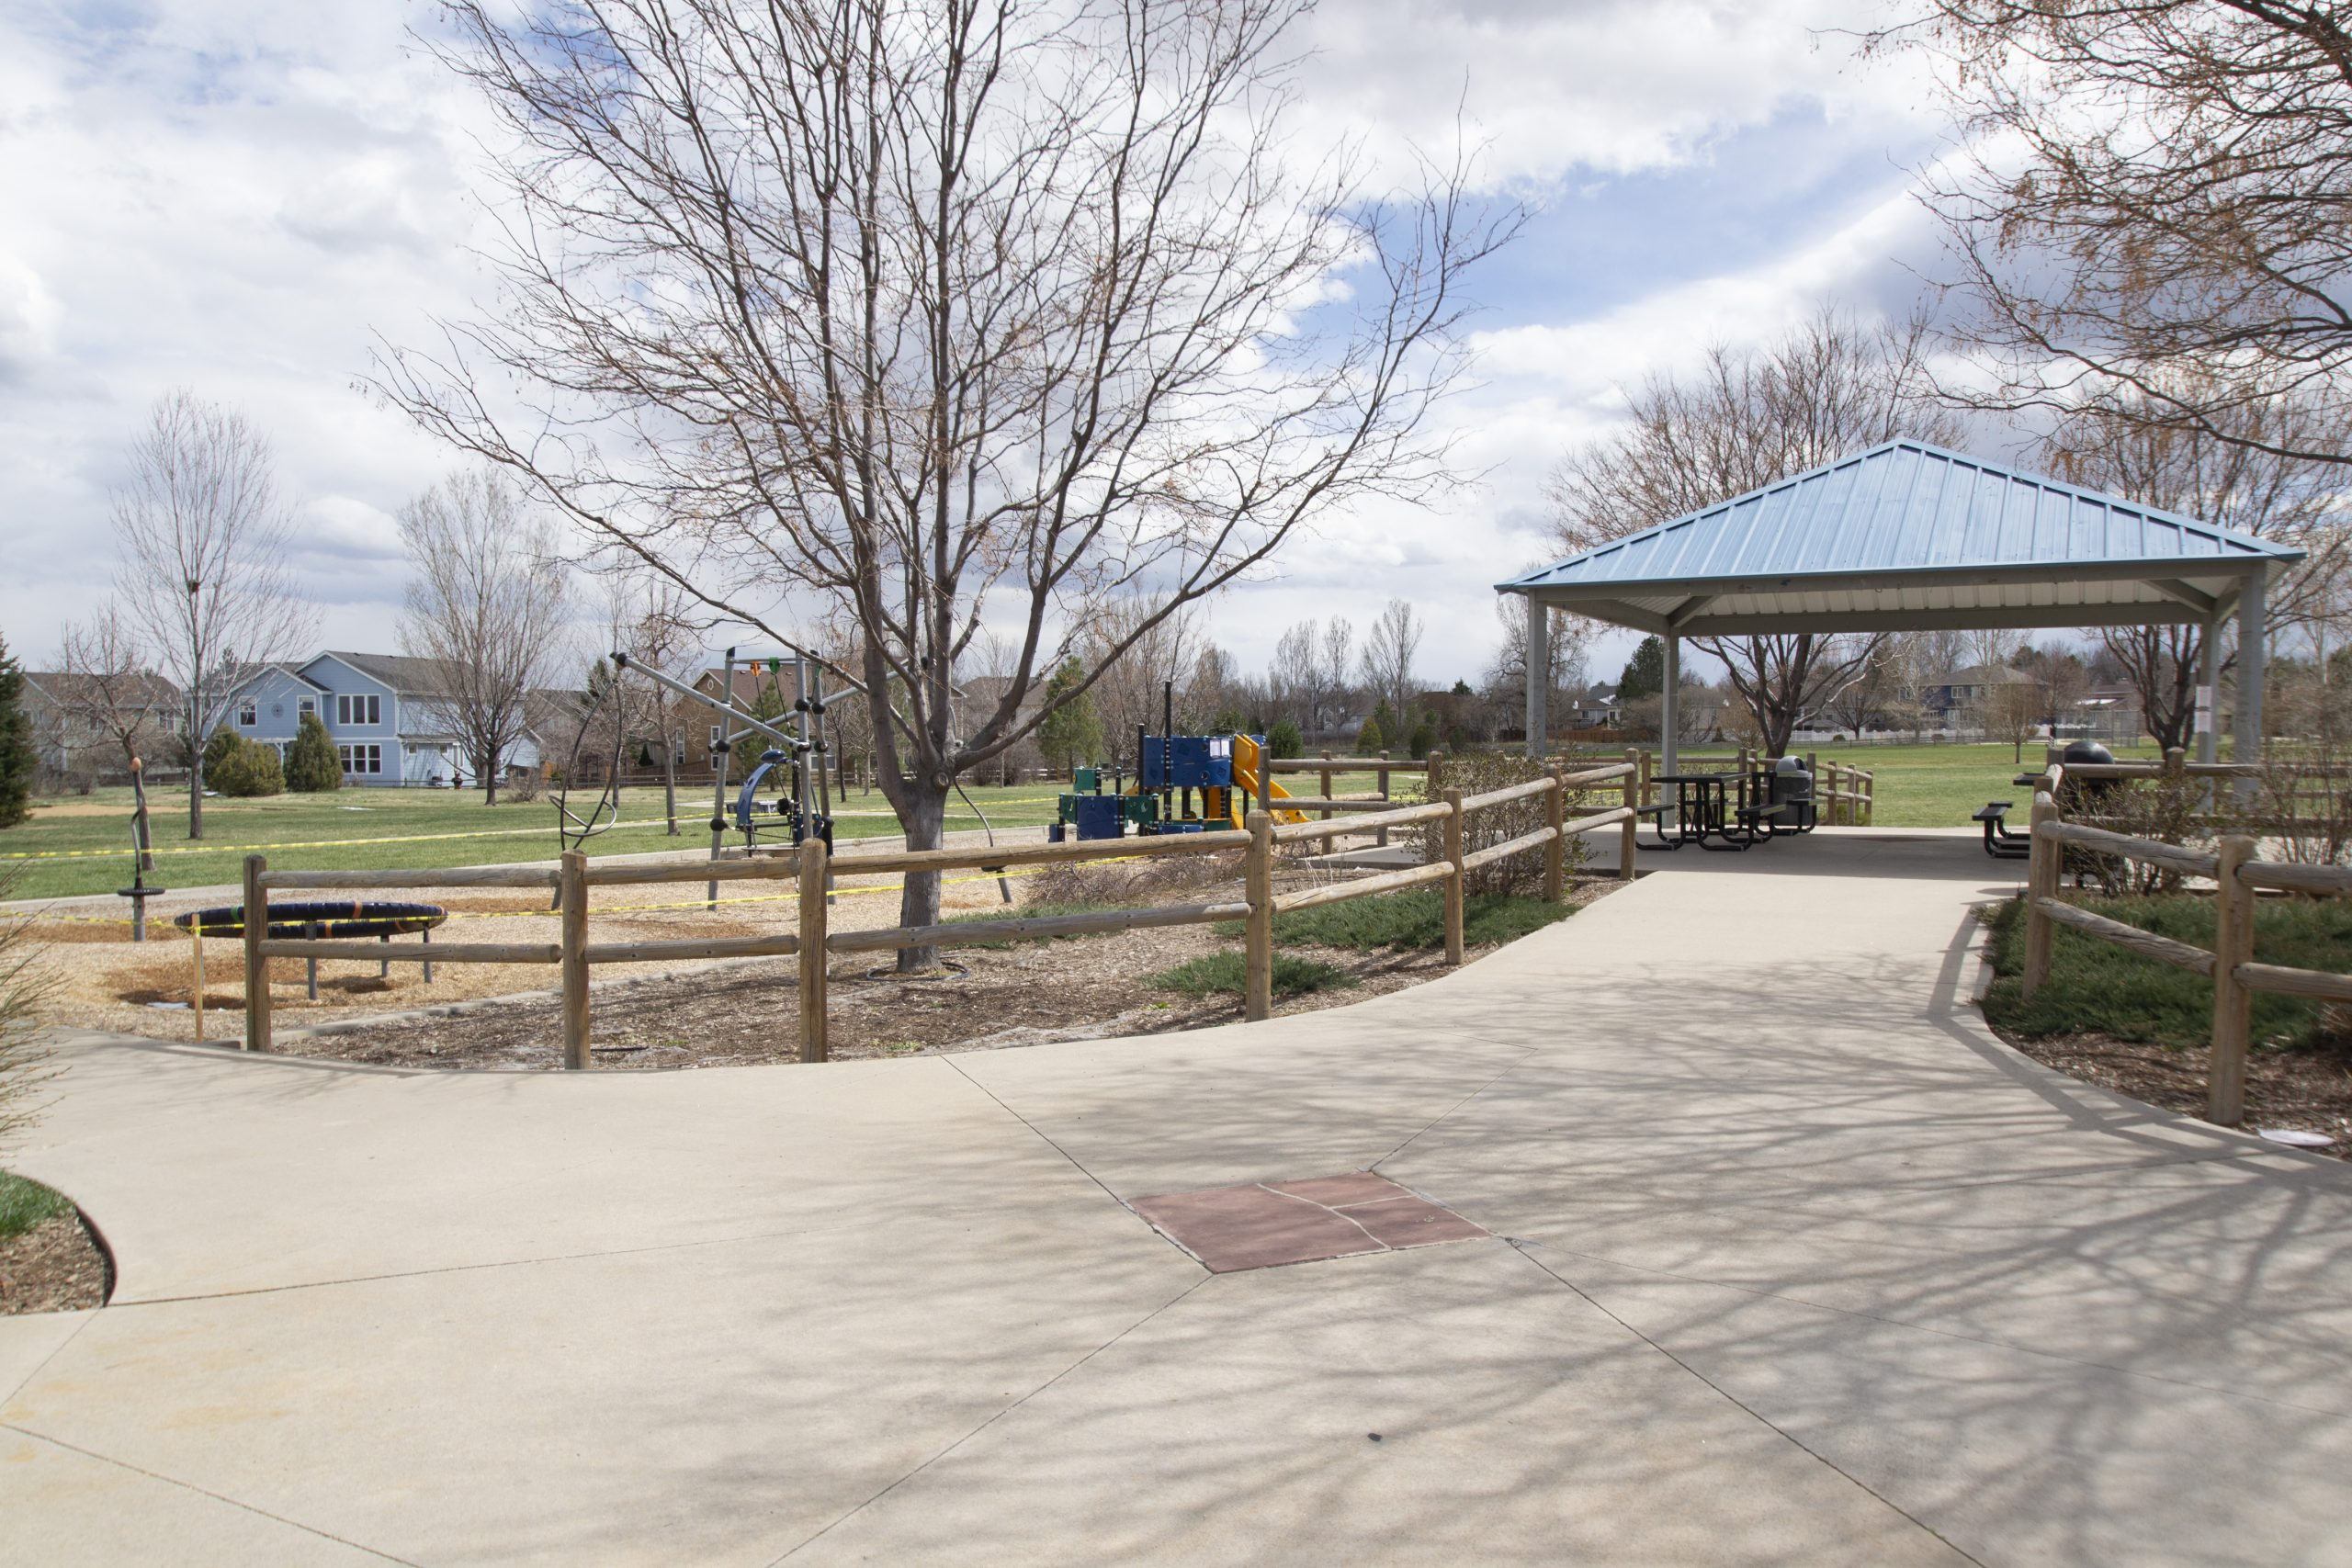 REAL ESTATE LISTING: 2182 Steppe Dr Longmont Covered Neighborhood Park